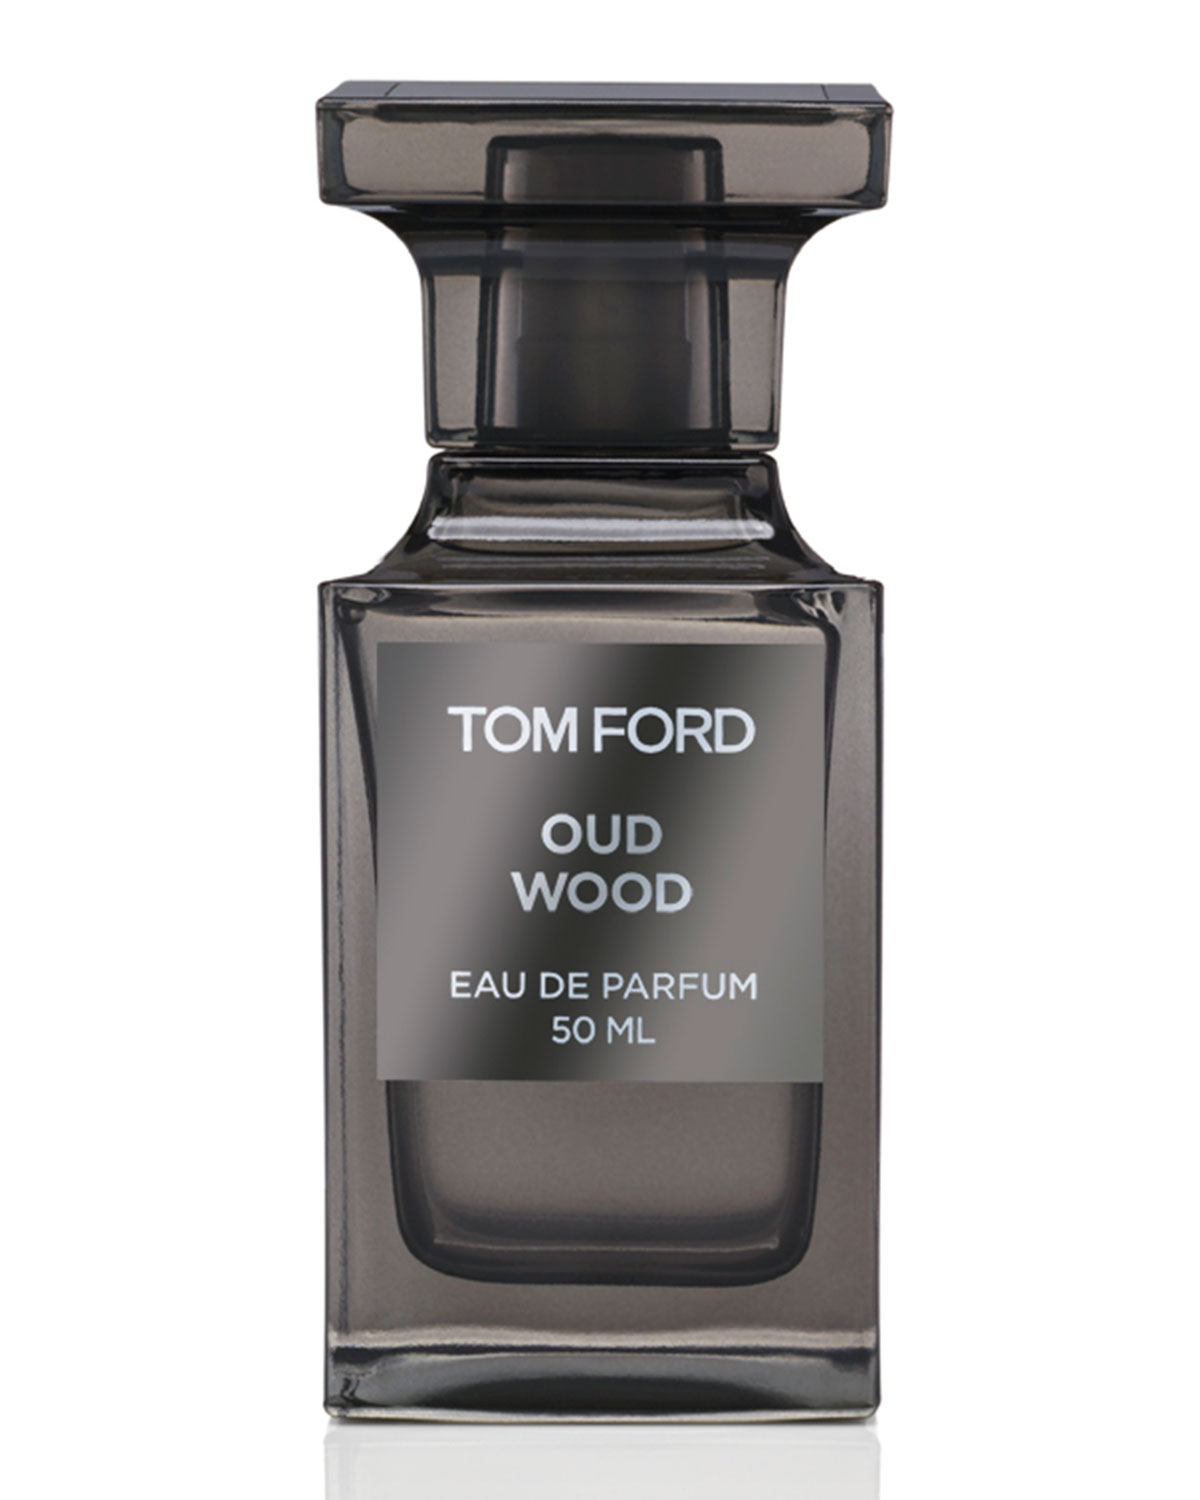 tom ford oud wood eau de parfum, 1.7 oz./ 50 ml | neiman marcus